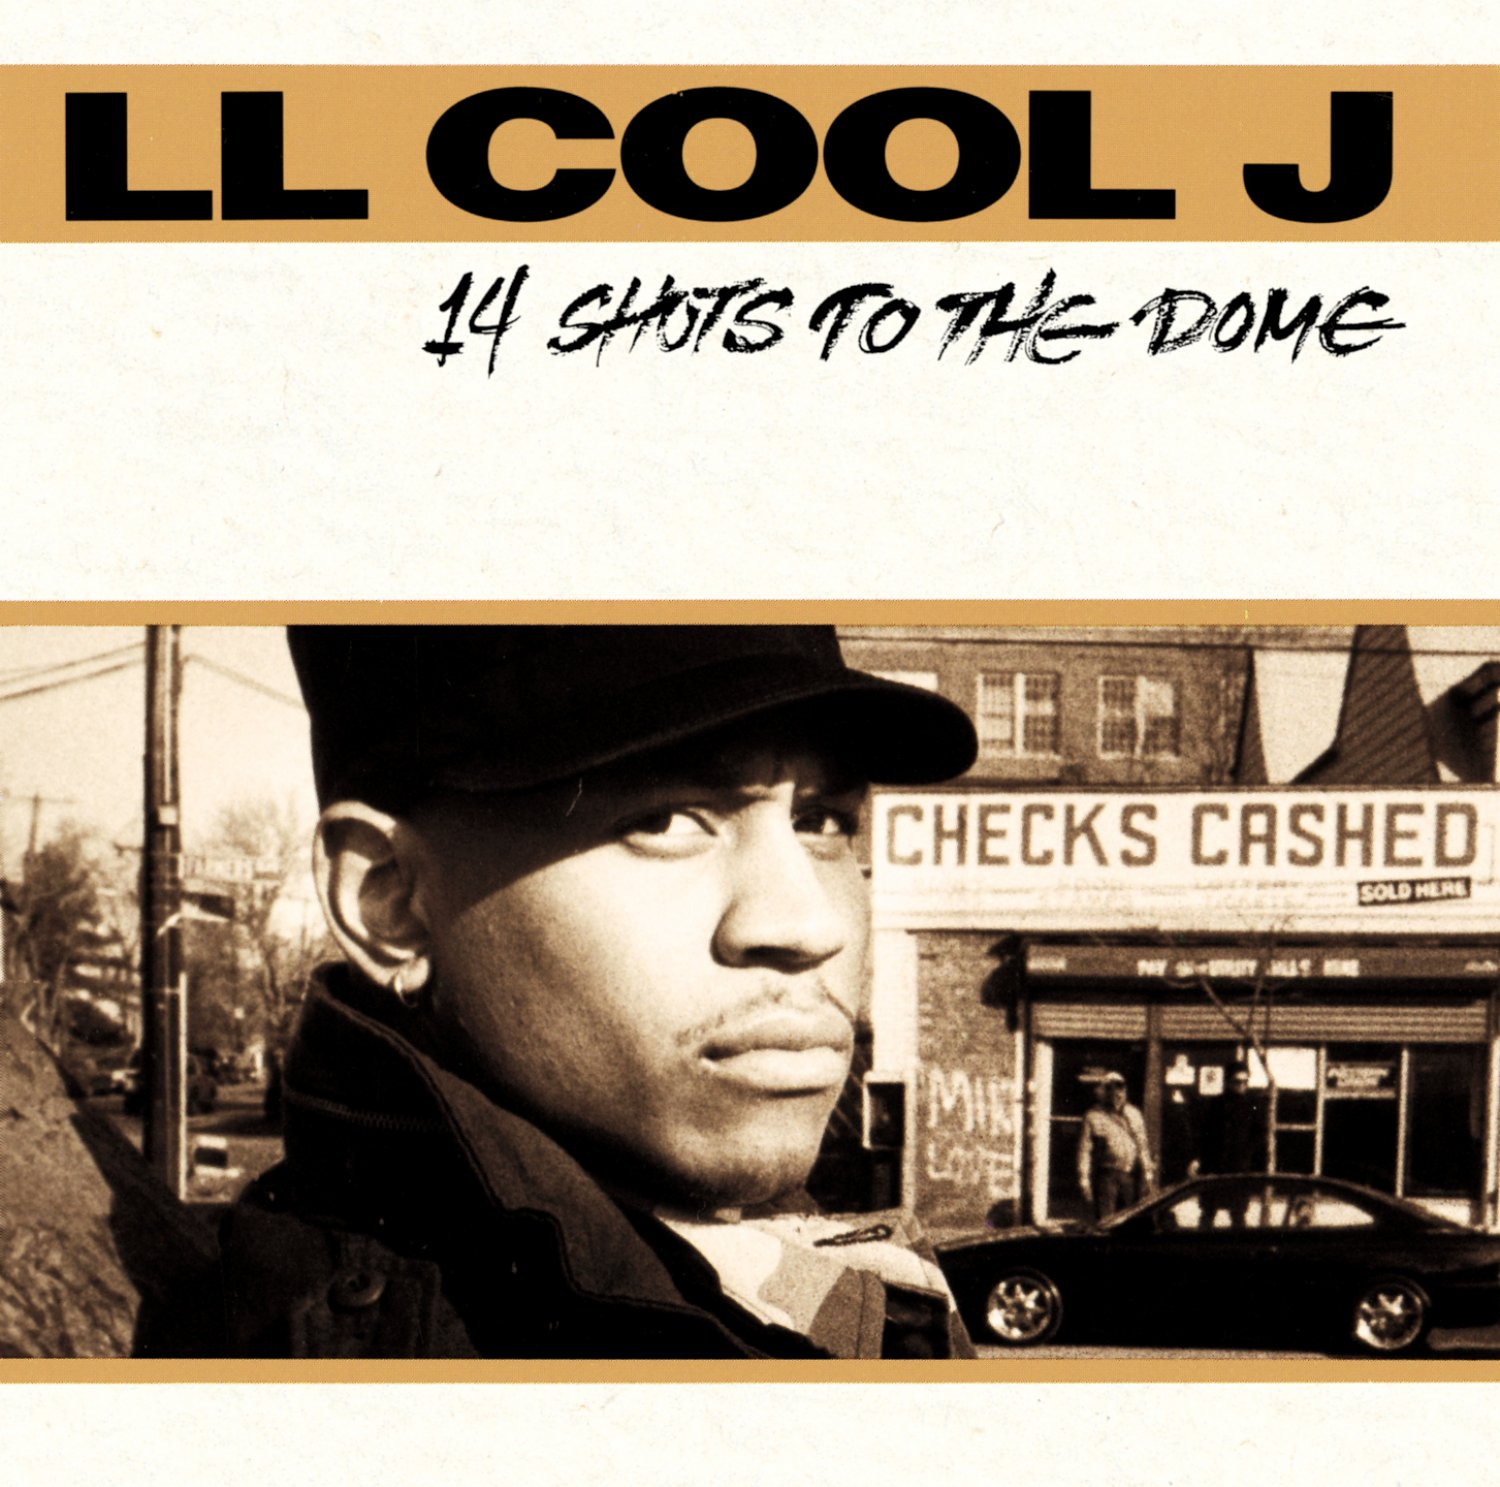 LL Cool J Dropped 14 Shots to the Dome 25 Years Ago